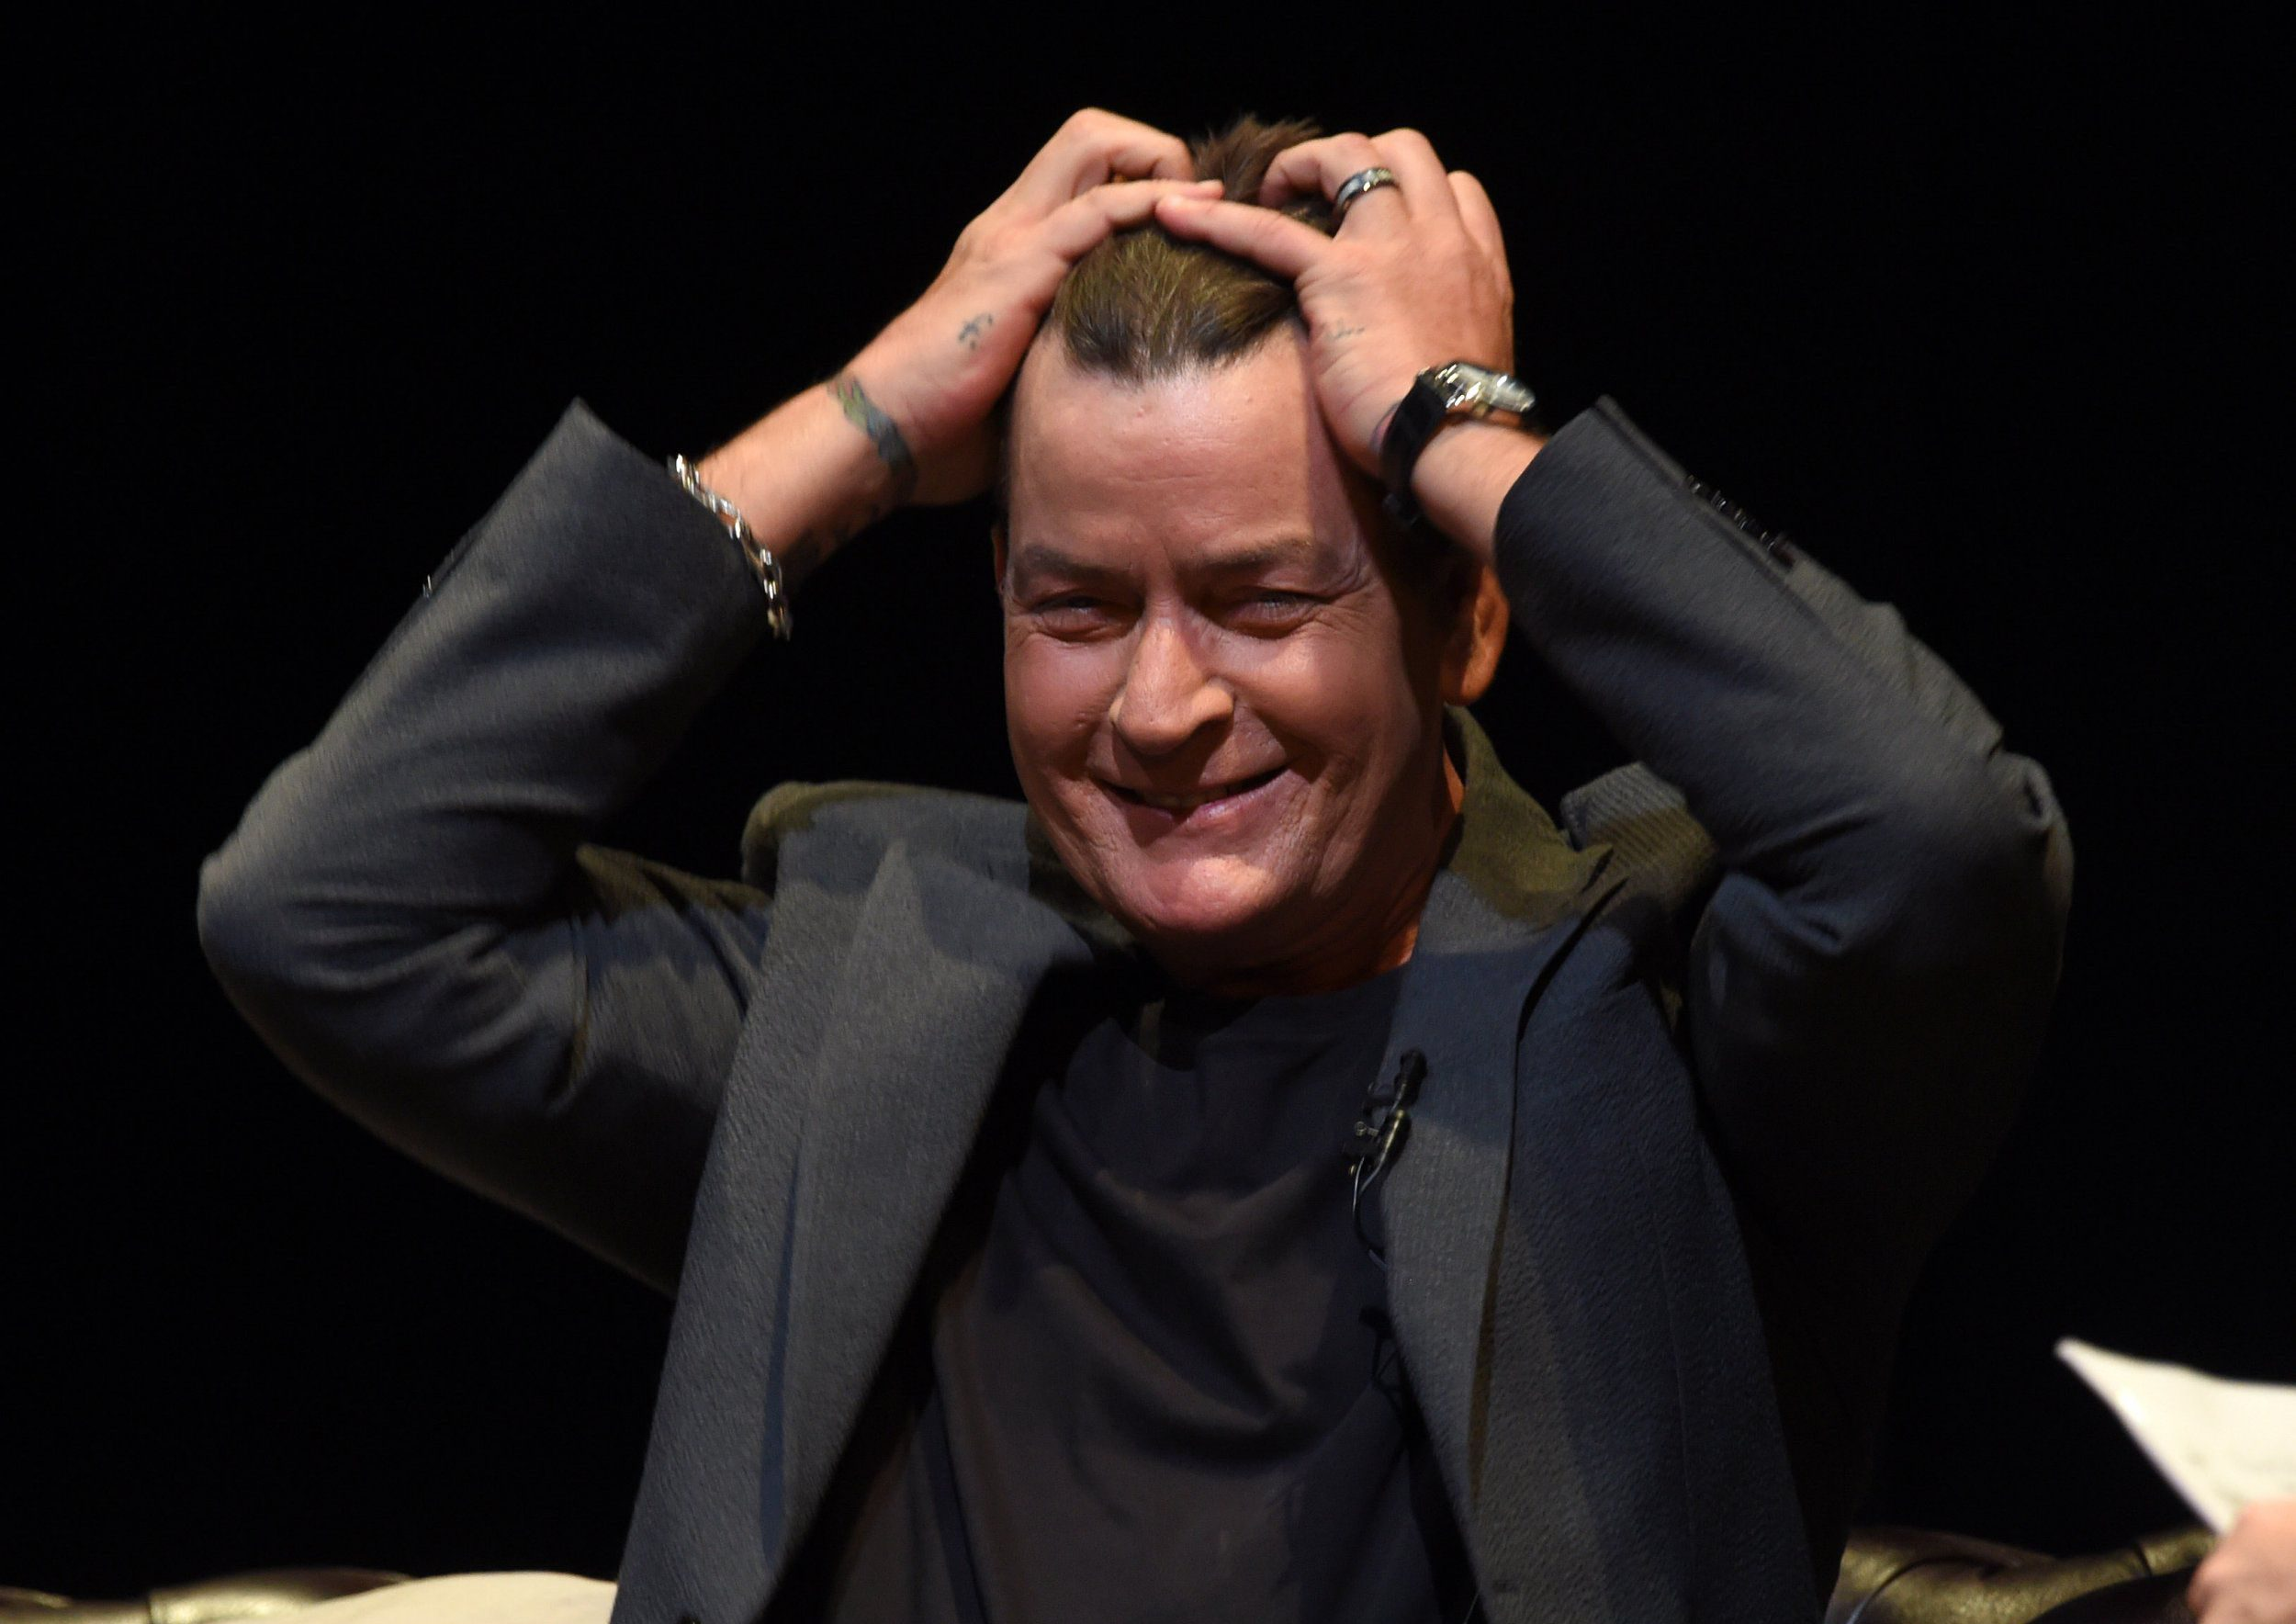 Charlie Sheen offers to buy Rihanna a drink after calling her a 'b***h'